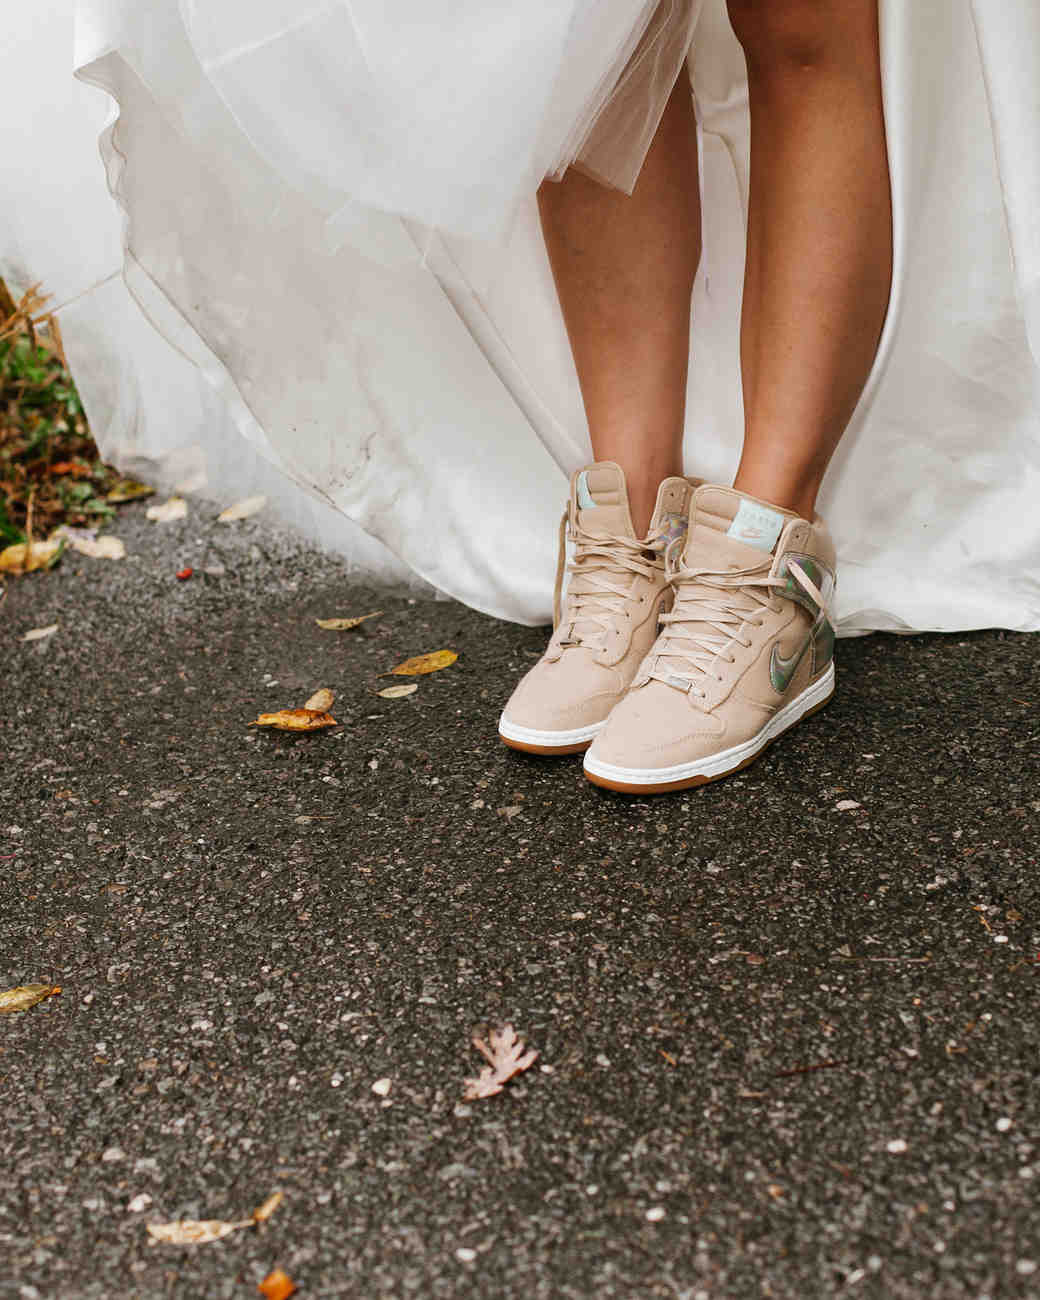 7-fall-wedding-sneakers-1015.jpg